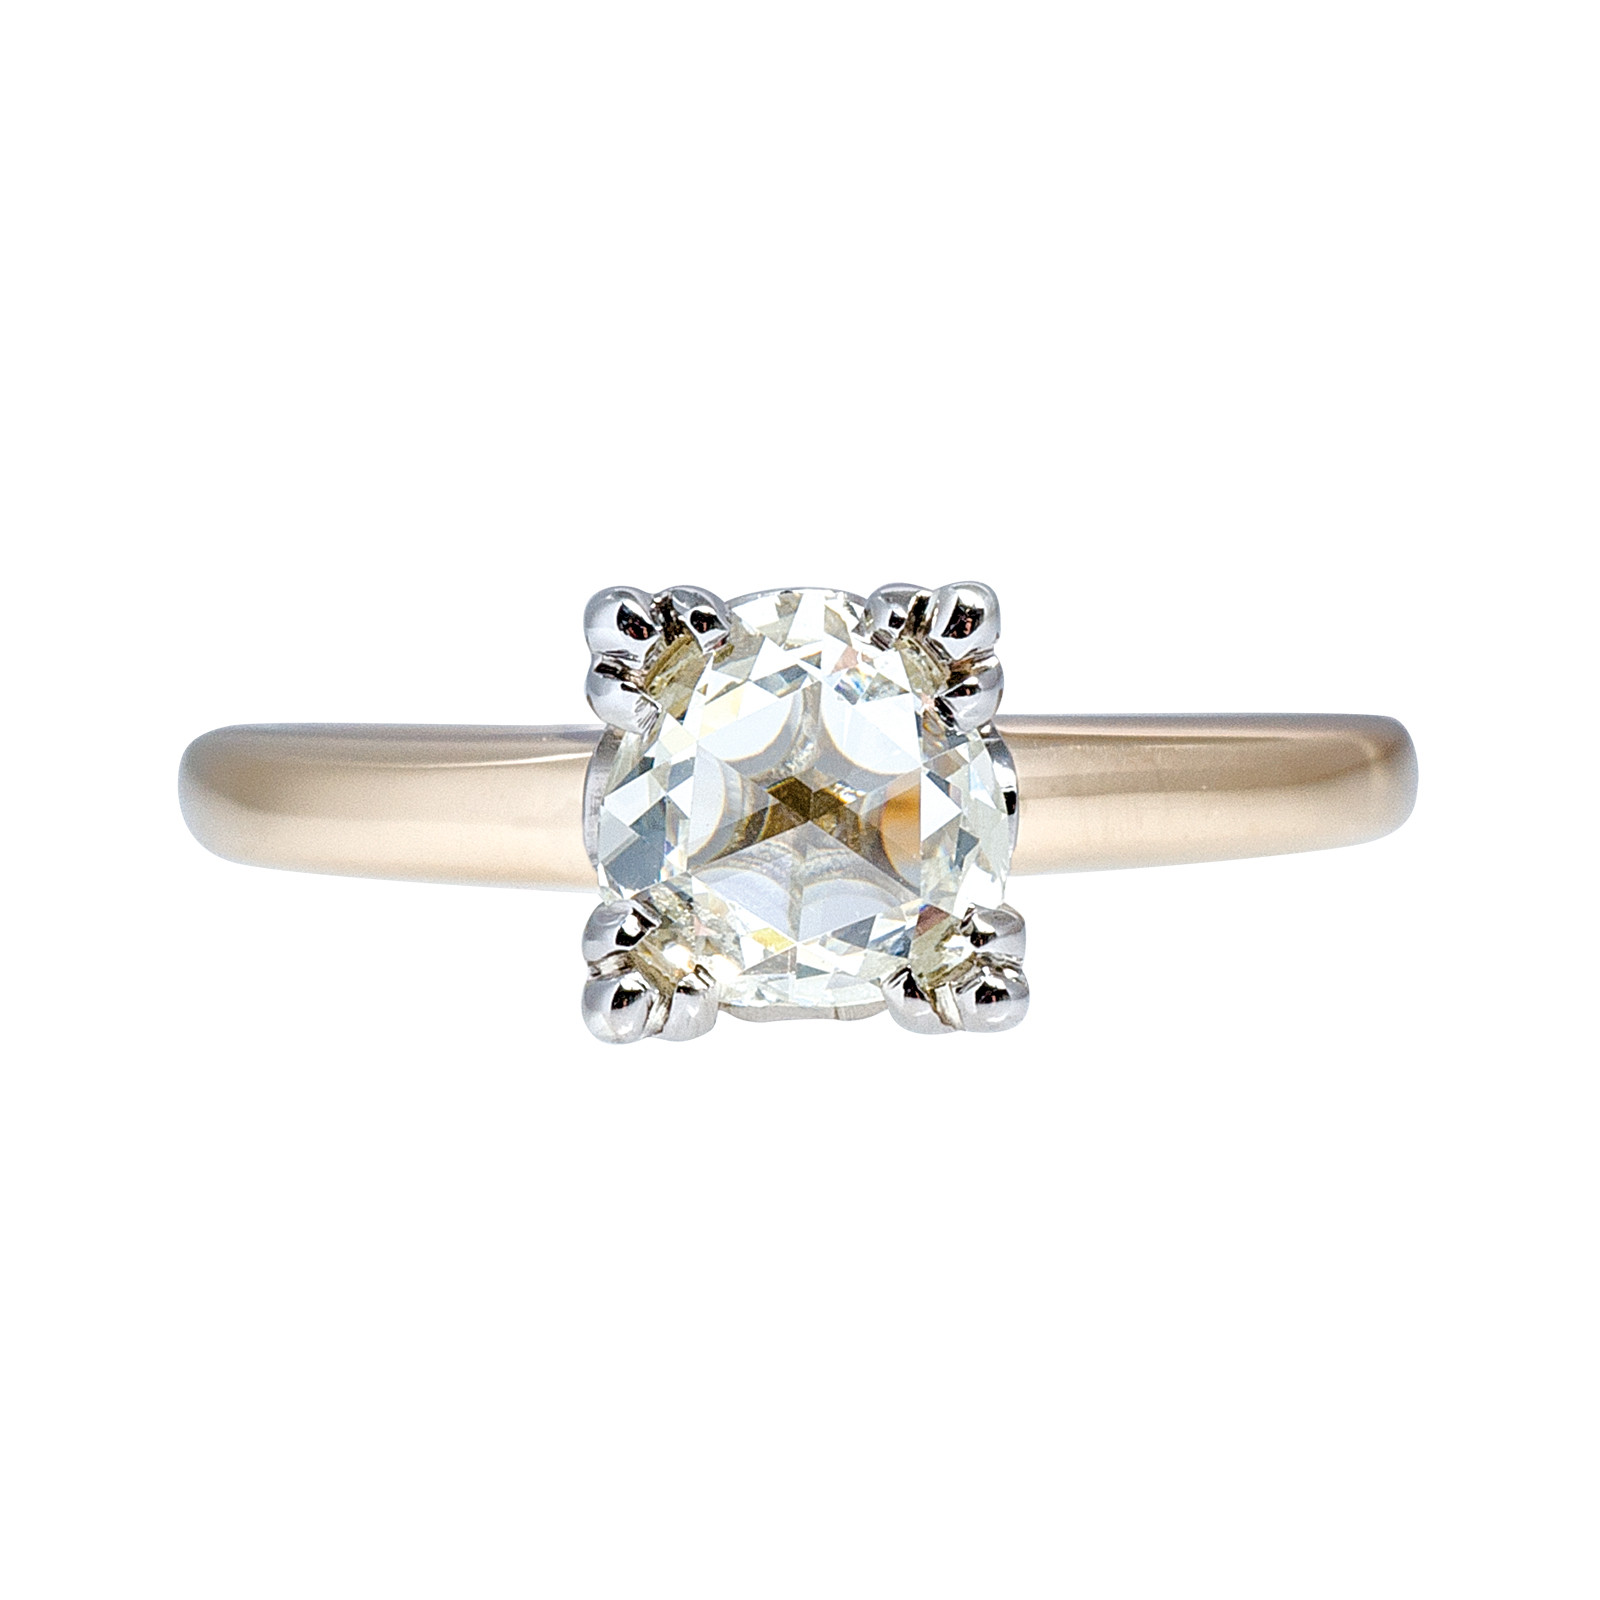 Vintage 0.71 CT Diamond Solitaire Engagement Ring